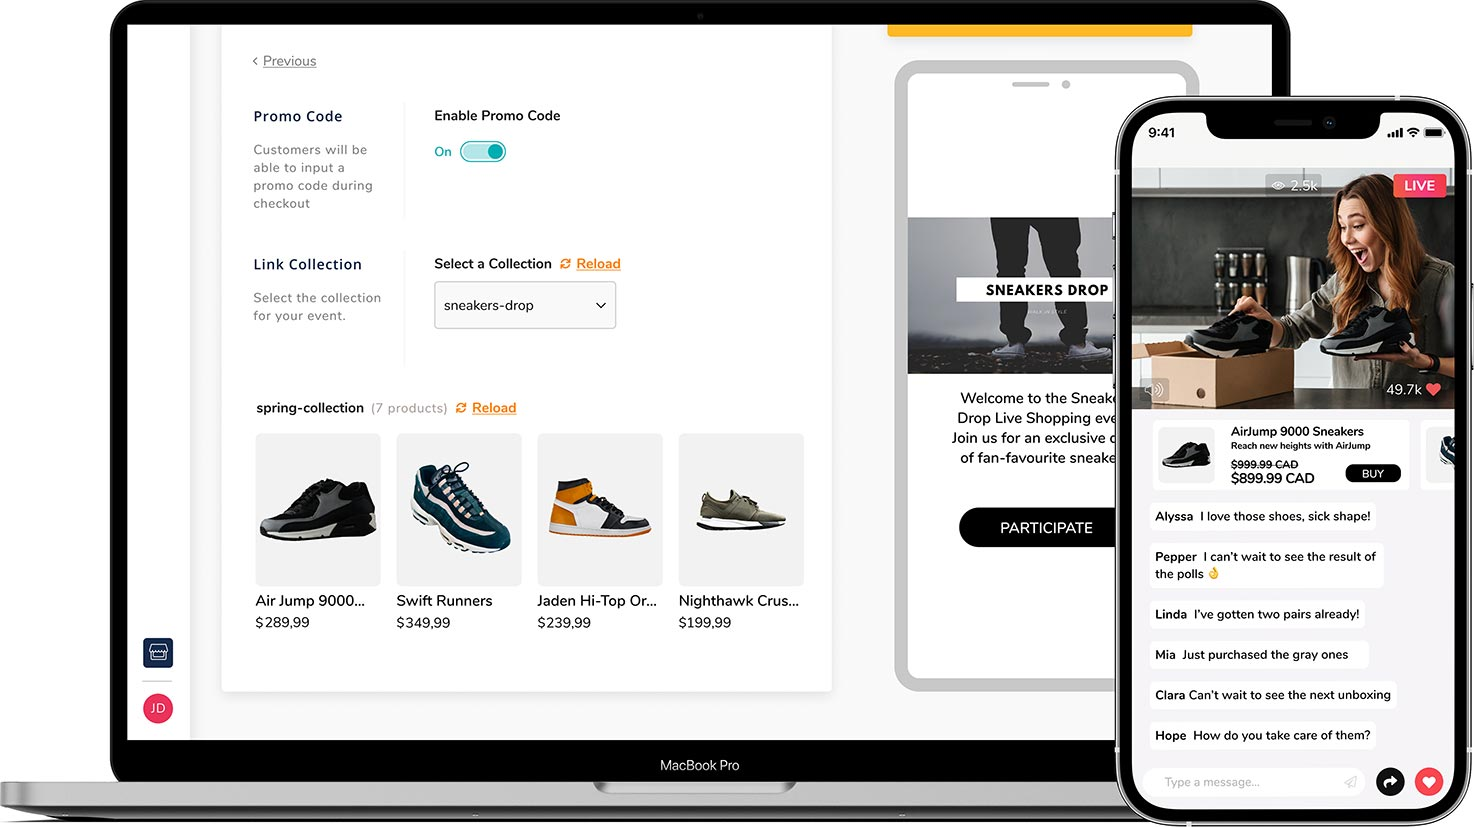 Product Sync of Live Shopping App Livescale with Sneakers Event